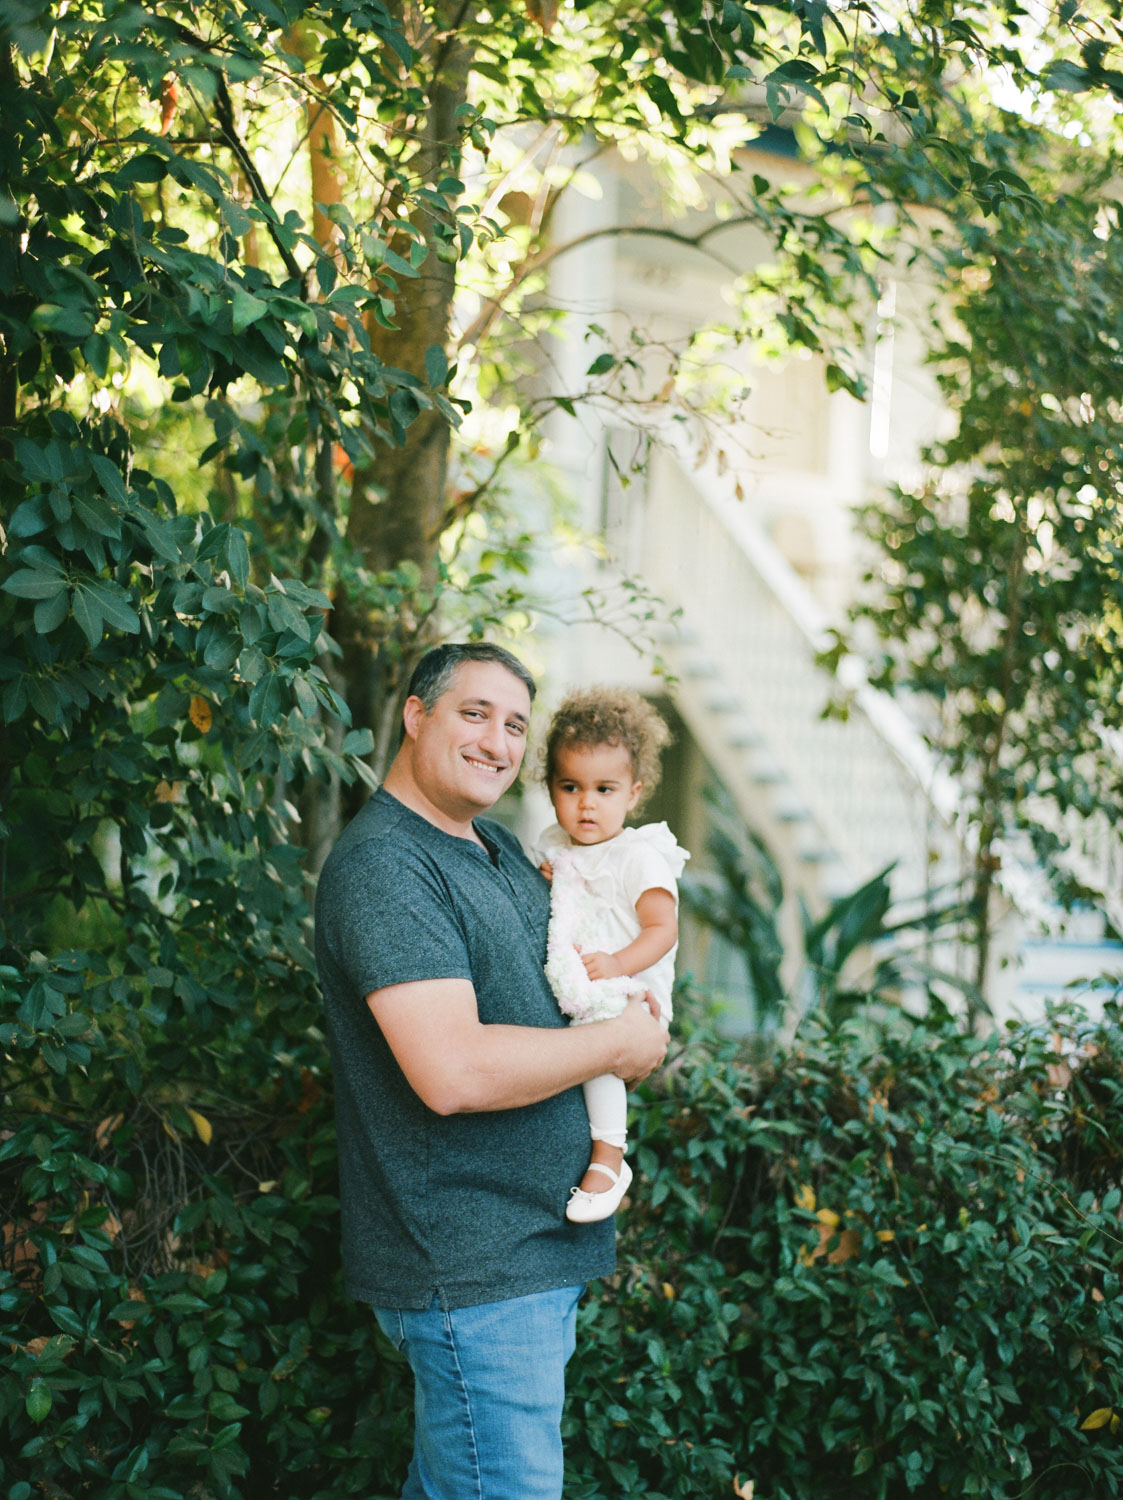 Family photography by Rachel Sima Photography